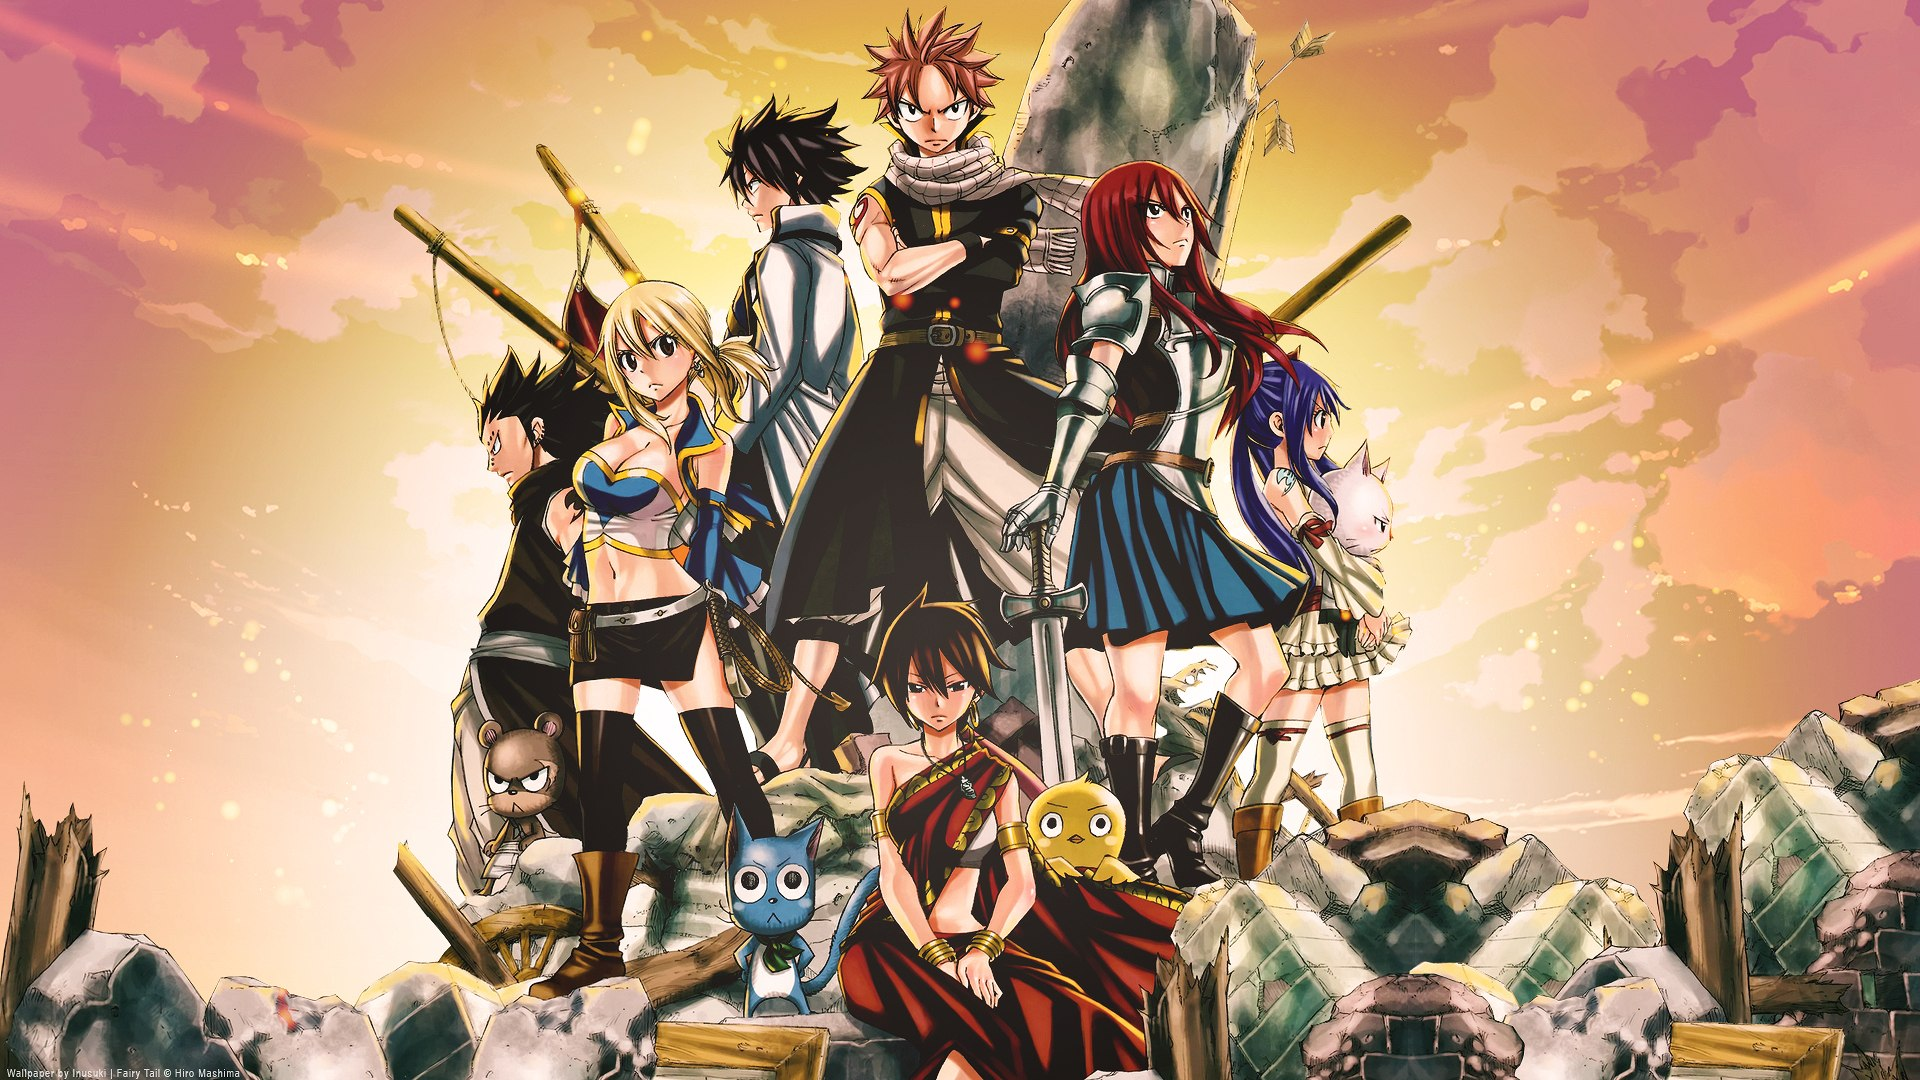 Fairy Tail Guild Wallpaper Hd Fairy Tail~!!